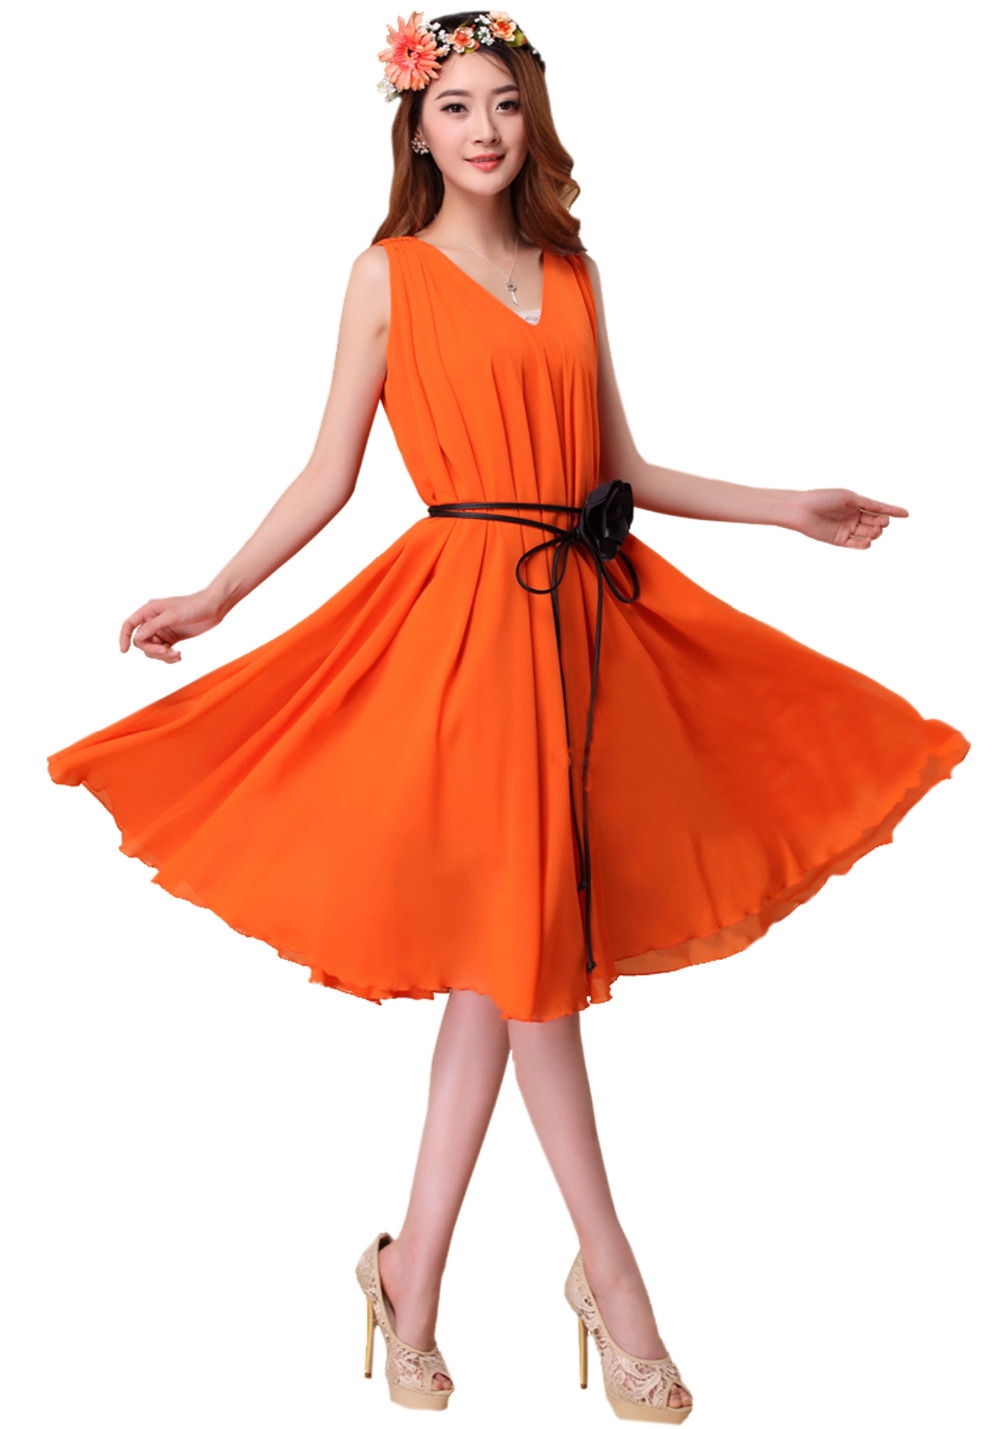 Compare Prices on Orange Sundress- Online Shopping/Buy Low Price ...